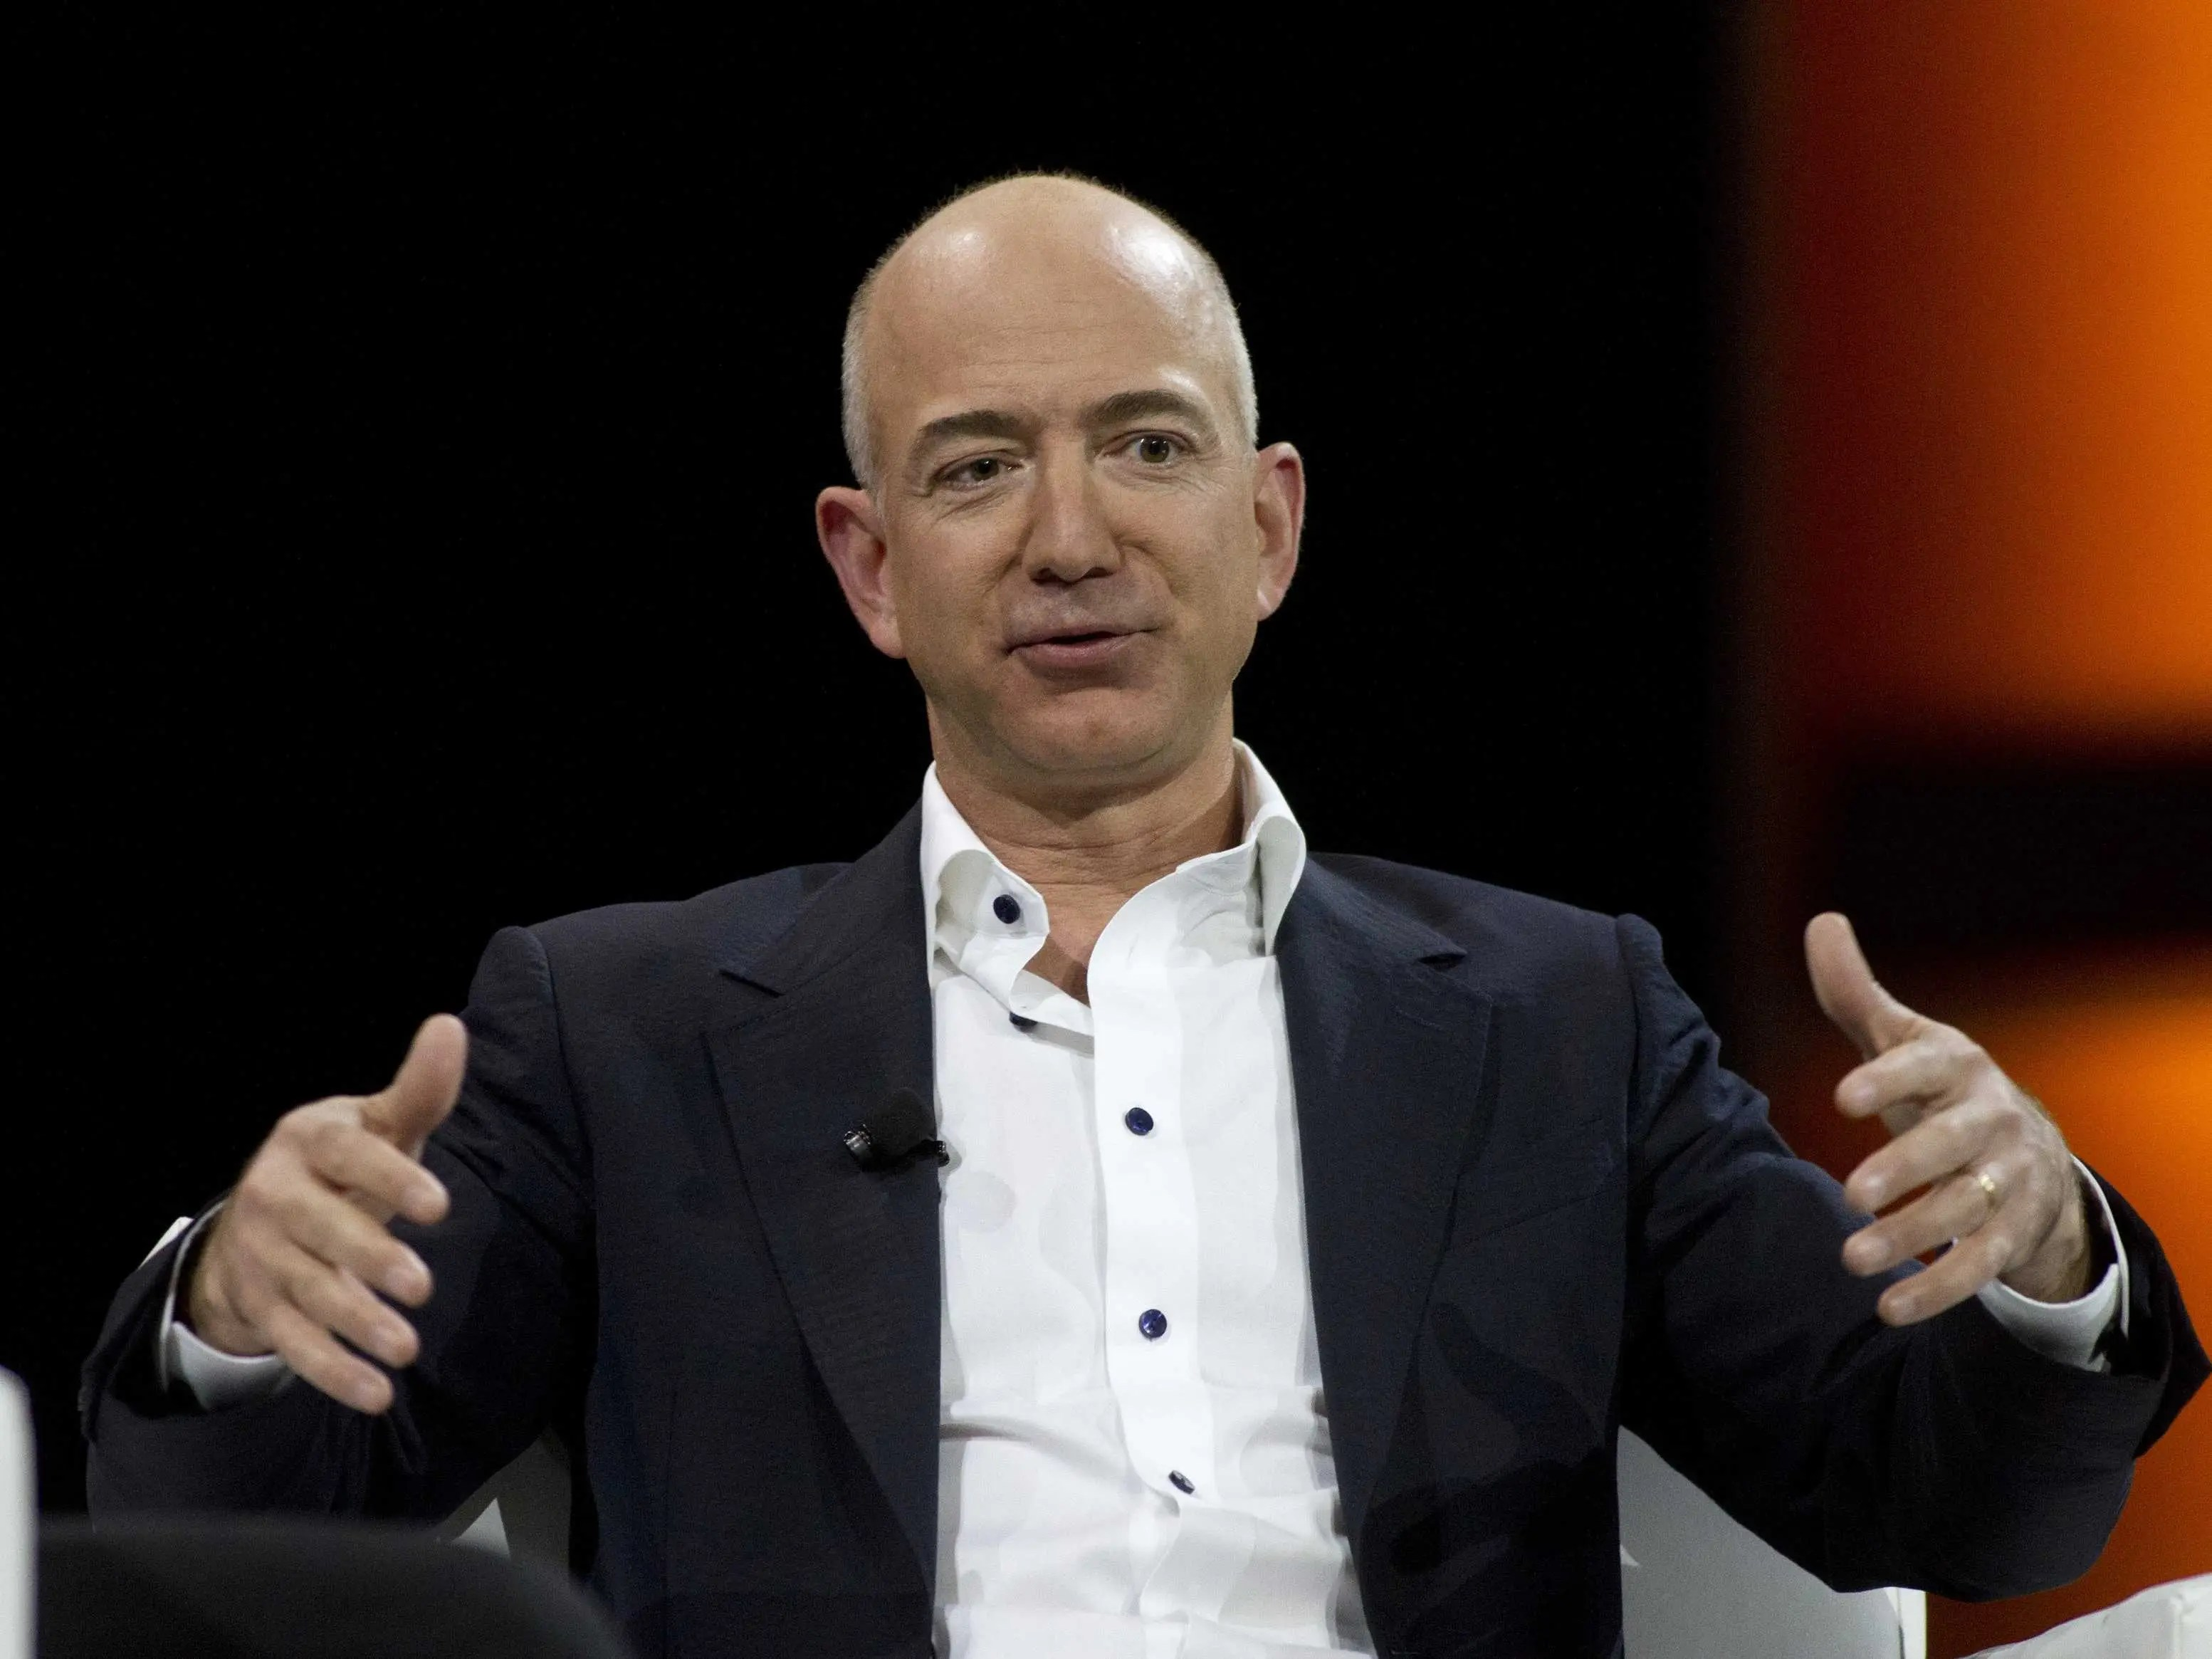 Amazon's Jeff Bezos: grill cook at McDonald's